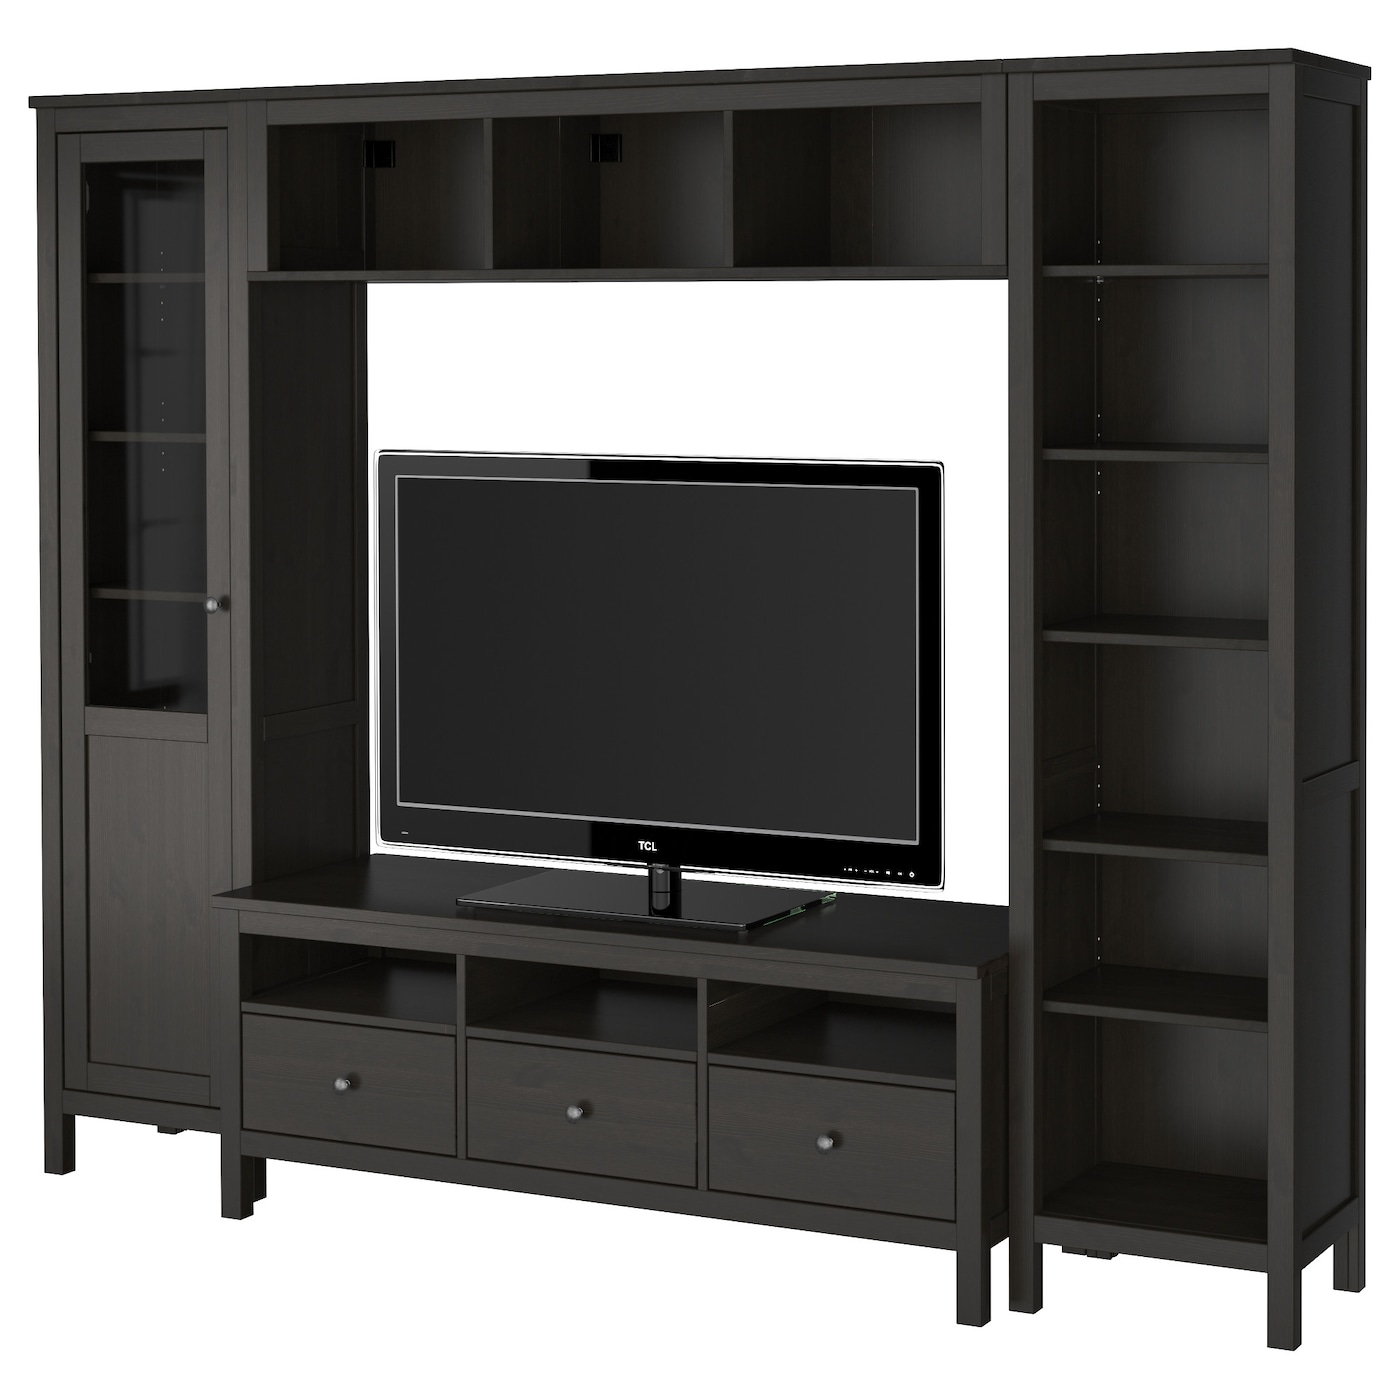 hemnes tv storage combination black brown 246x197 cm ikea. Black Bedroom Furniture Sets. Home Design Ideas